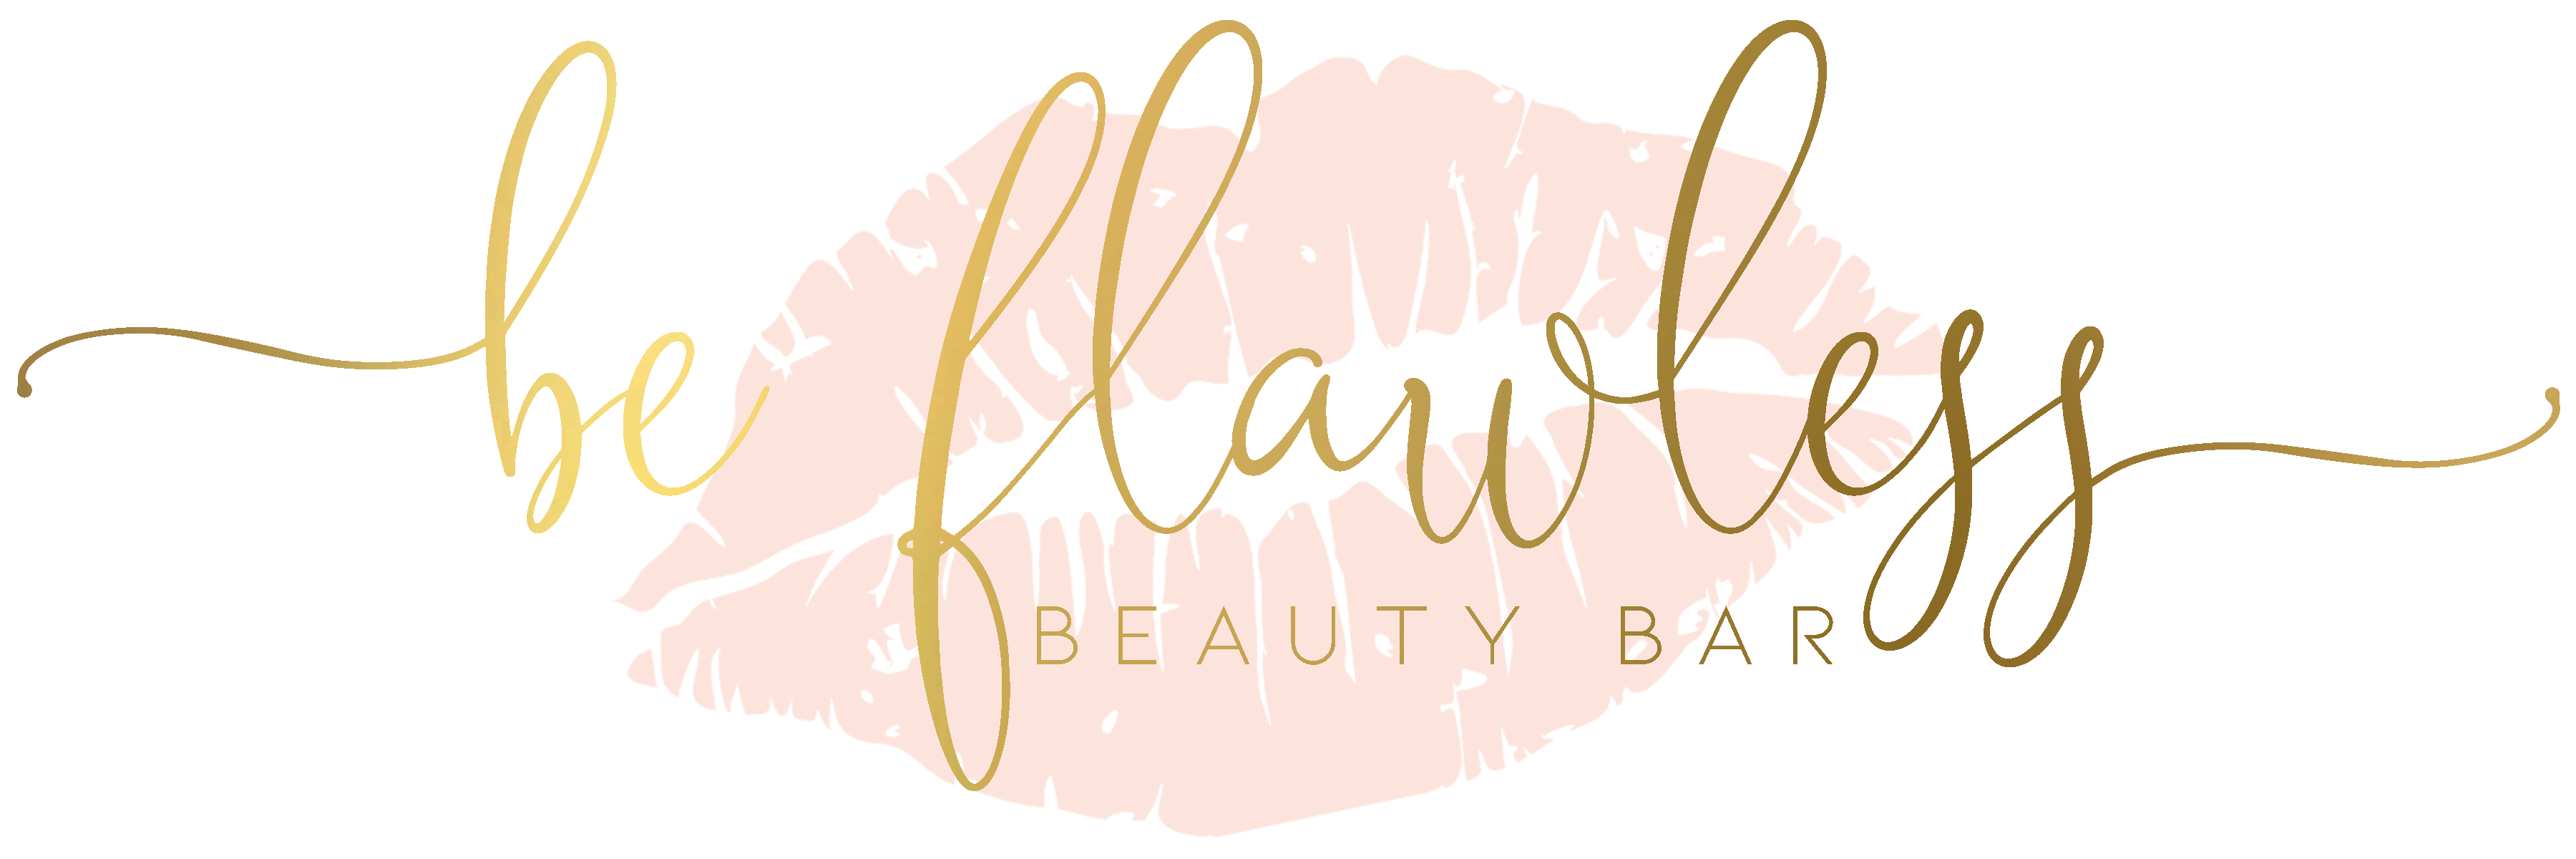 Flawless Beauty Bar